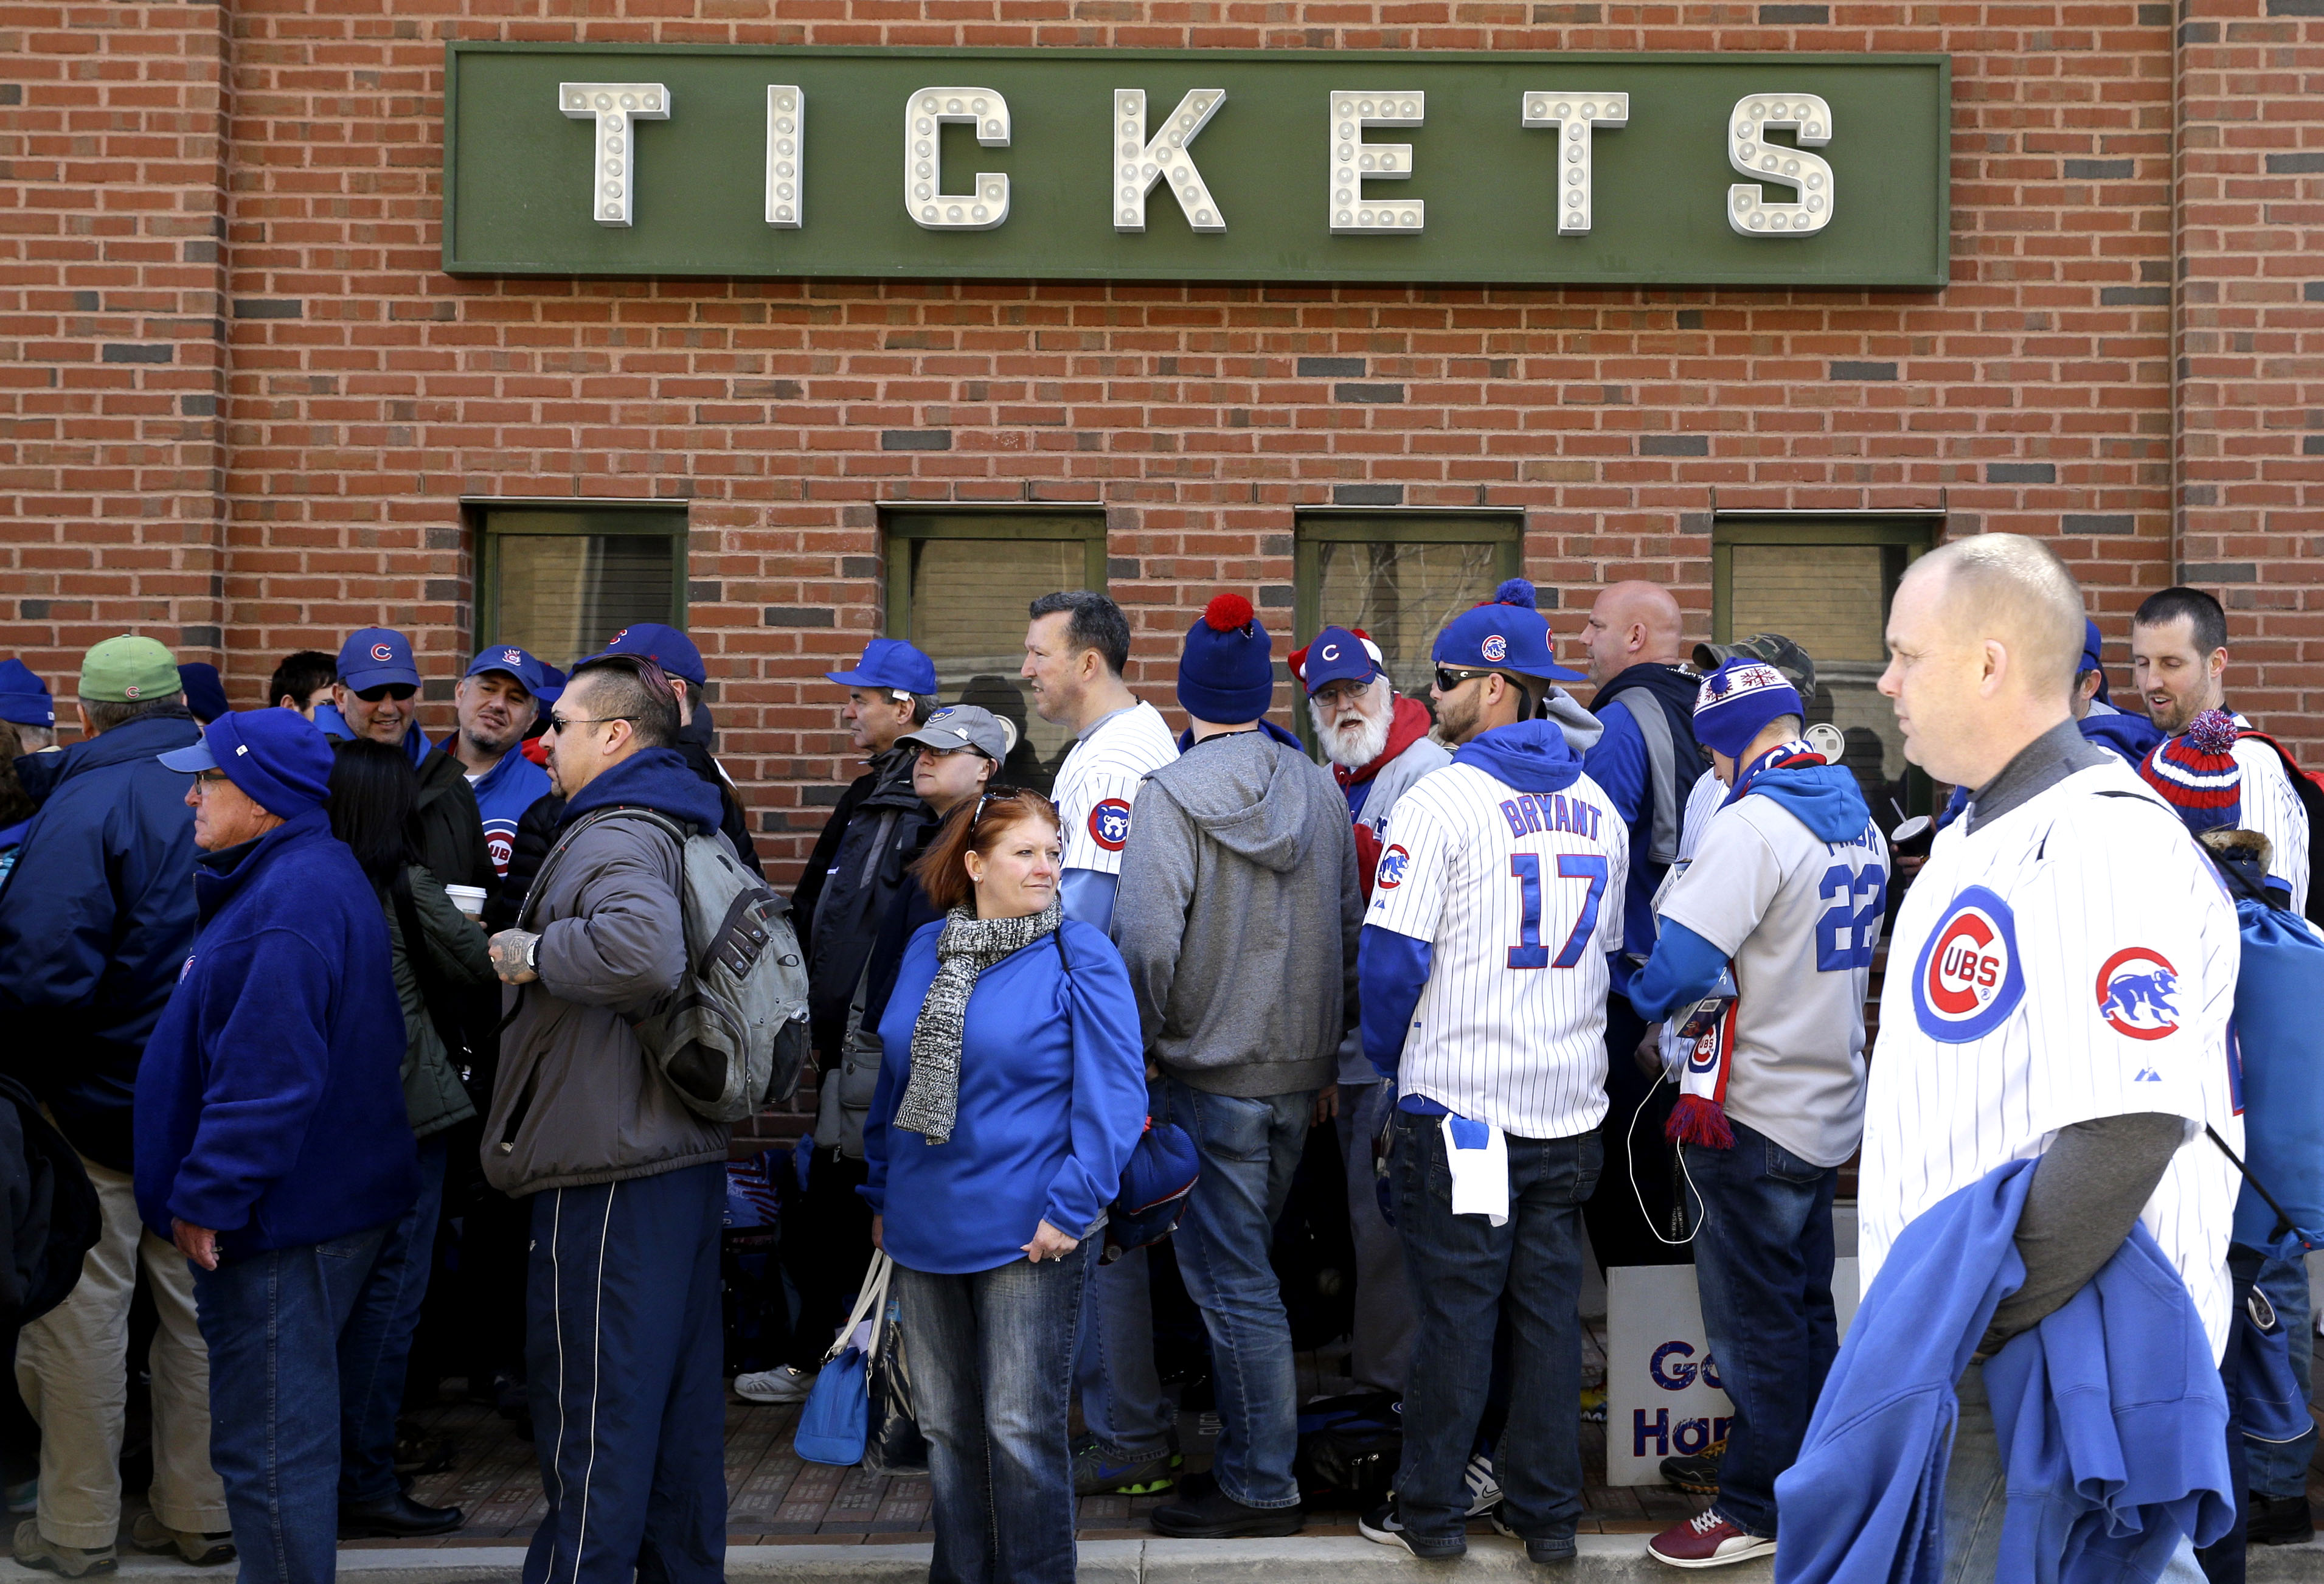 Fans line up outside the Wrigley Field before the start of an opening day baseball game between the Cincinnati Reds and the Chicago Cubs on Monday, April 11, 2016, in Chicago. (AP Photo/Nam Y. Huh)